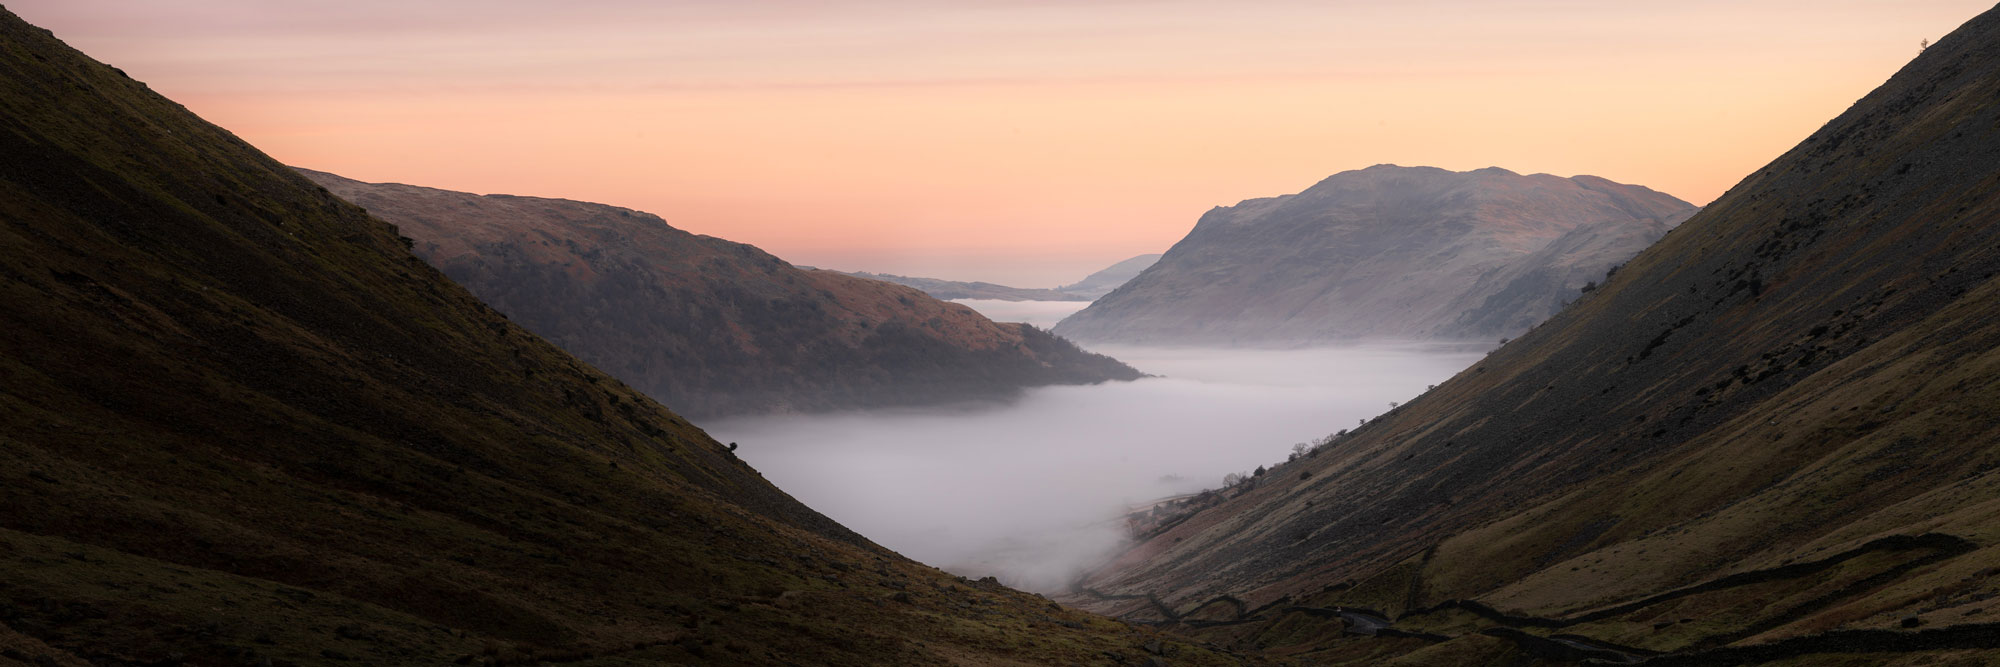 kirkstone pass view of Patterdale valley during a cloud inversion at sunrise